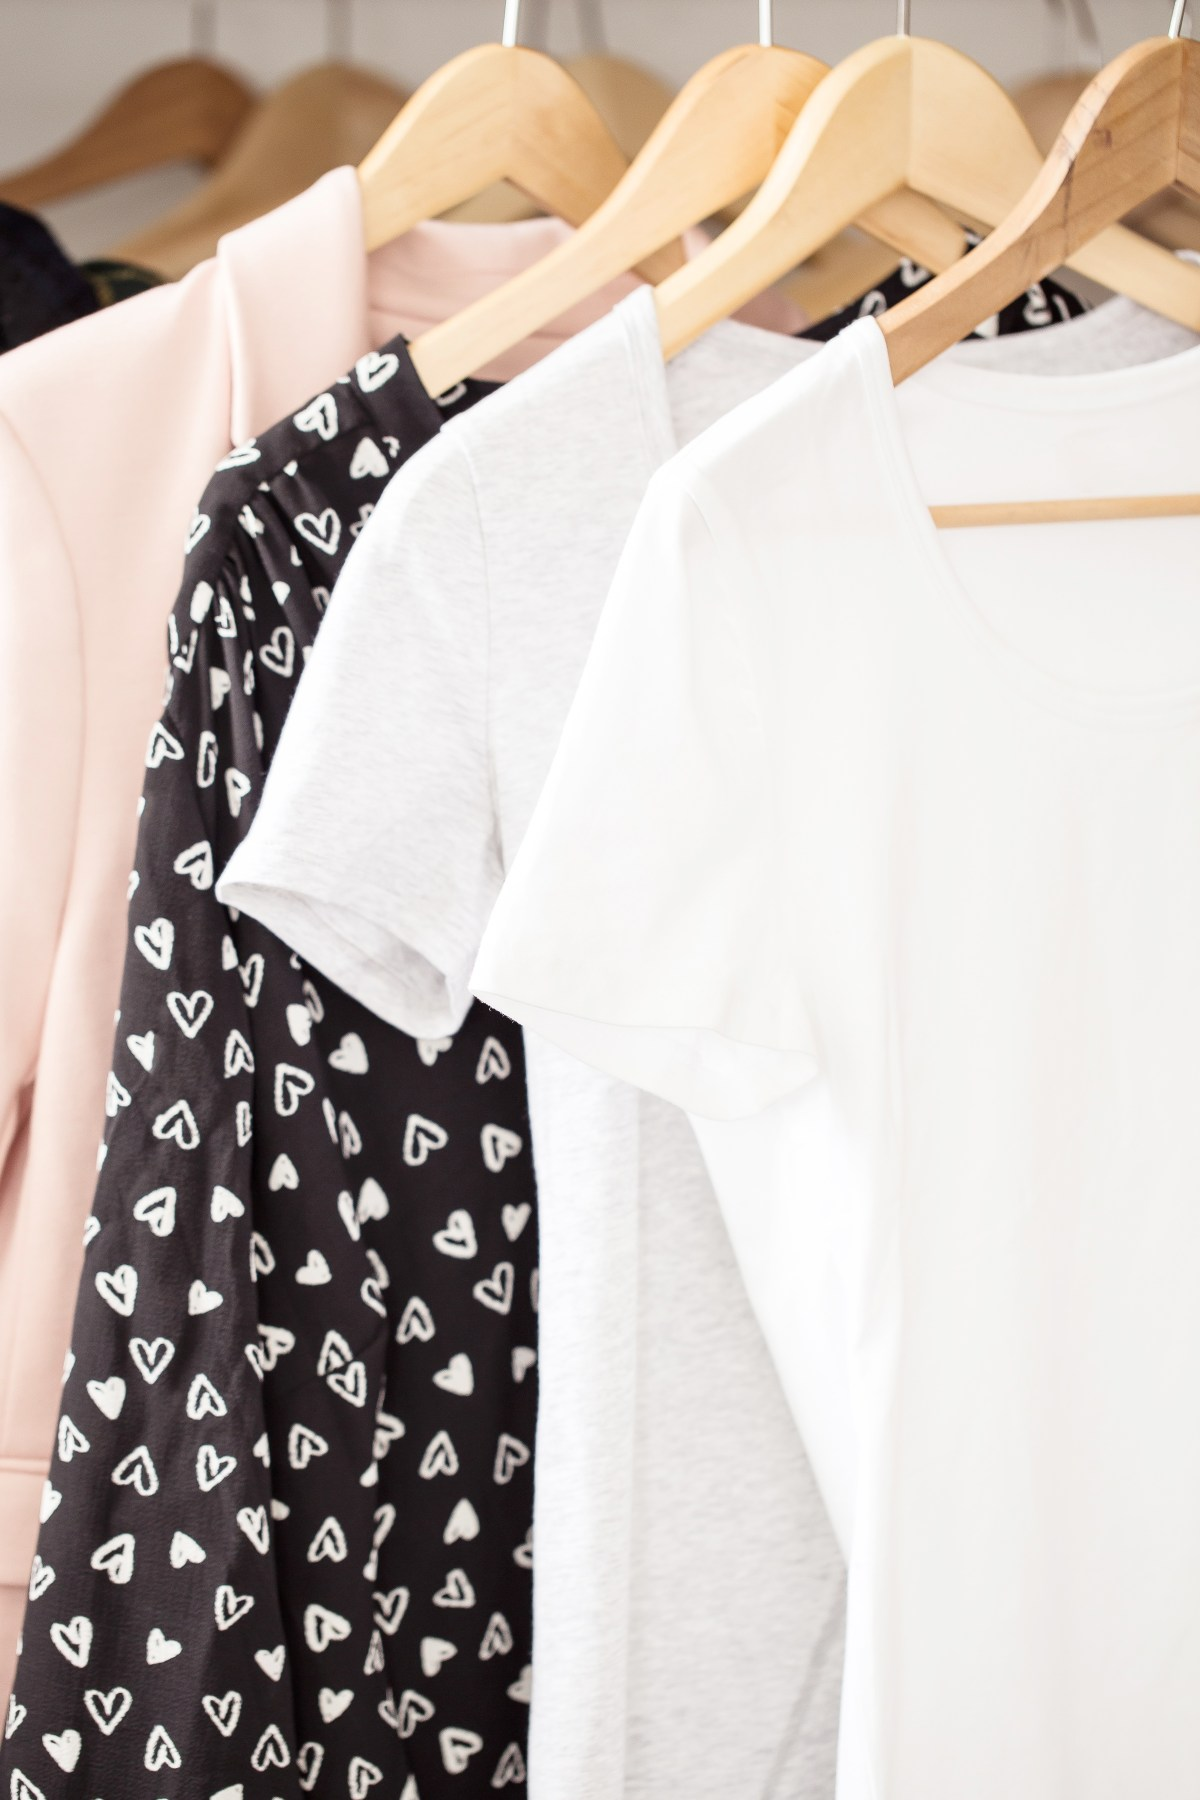 How To Declutter & Organise Your Bedroom Closet: 10 Spring Cleaning Tips From YouTube Experts!